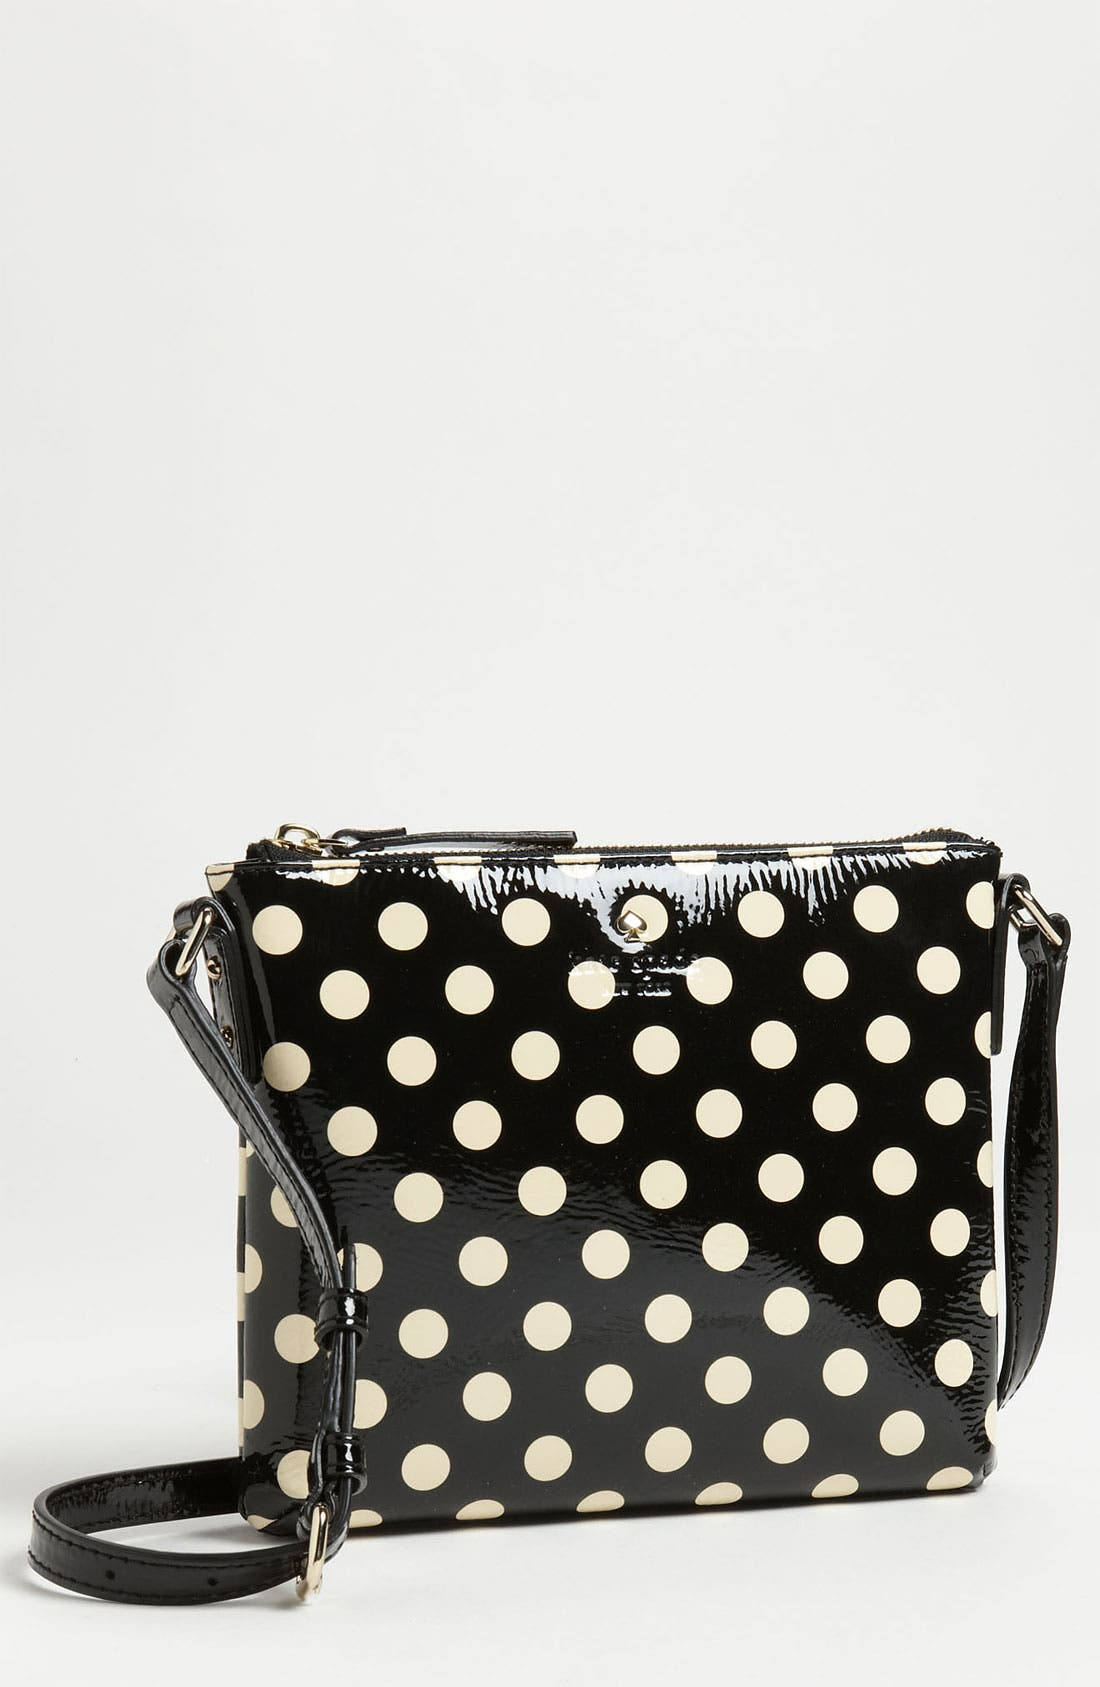 Main Image - kate spade new york 'carlisle street - tenley' crossbody bag